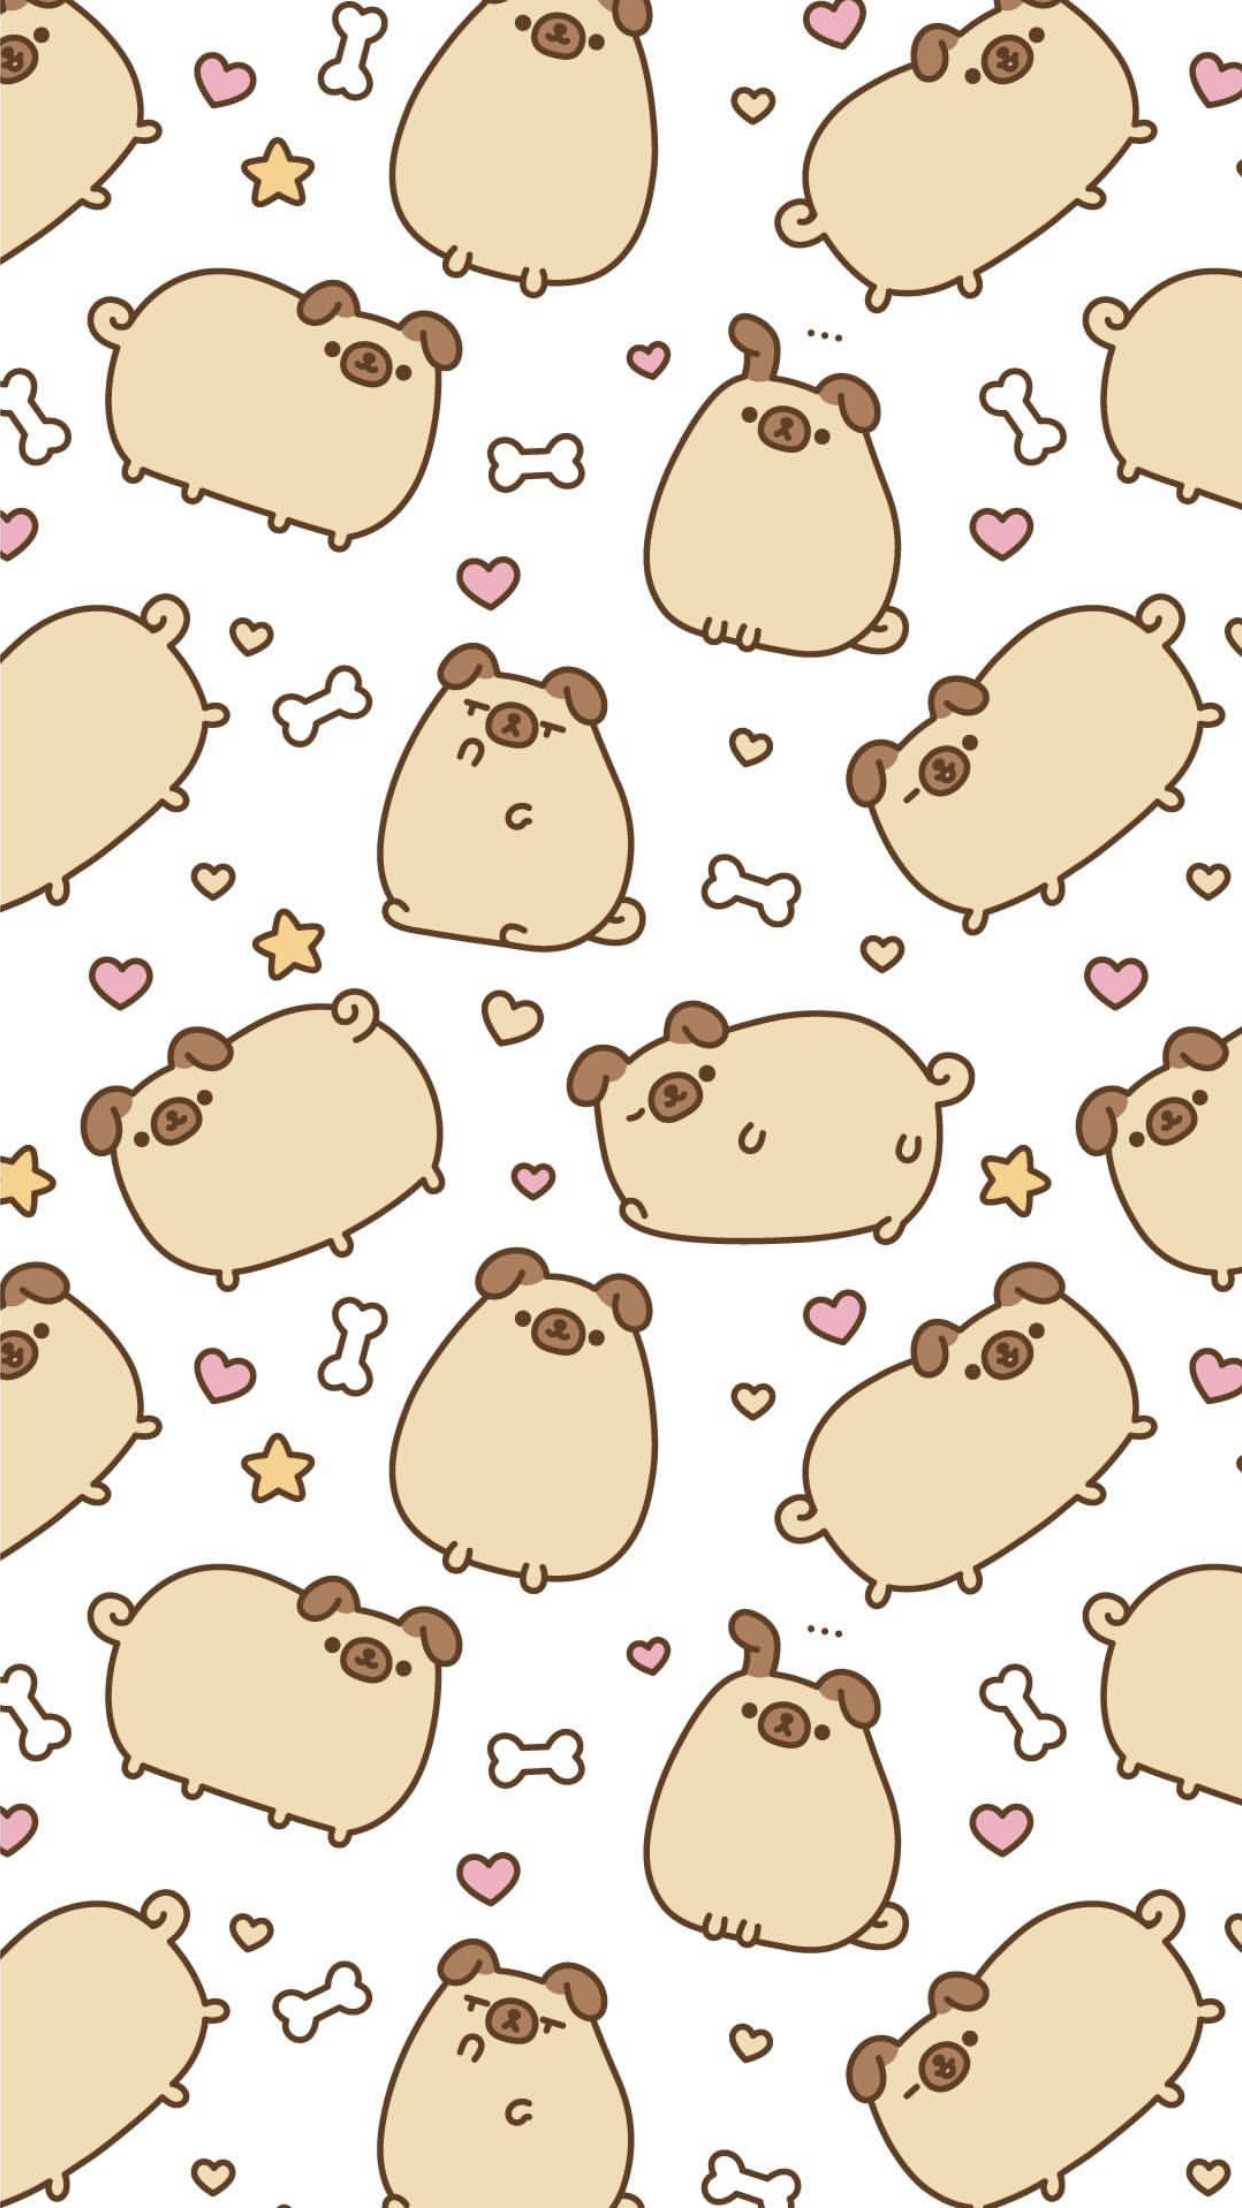 Pusheen Iphone Wallpaper Dog Wallpaper Iphone Pusheen Cute Cute Wallpapers